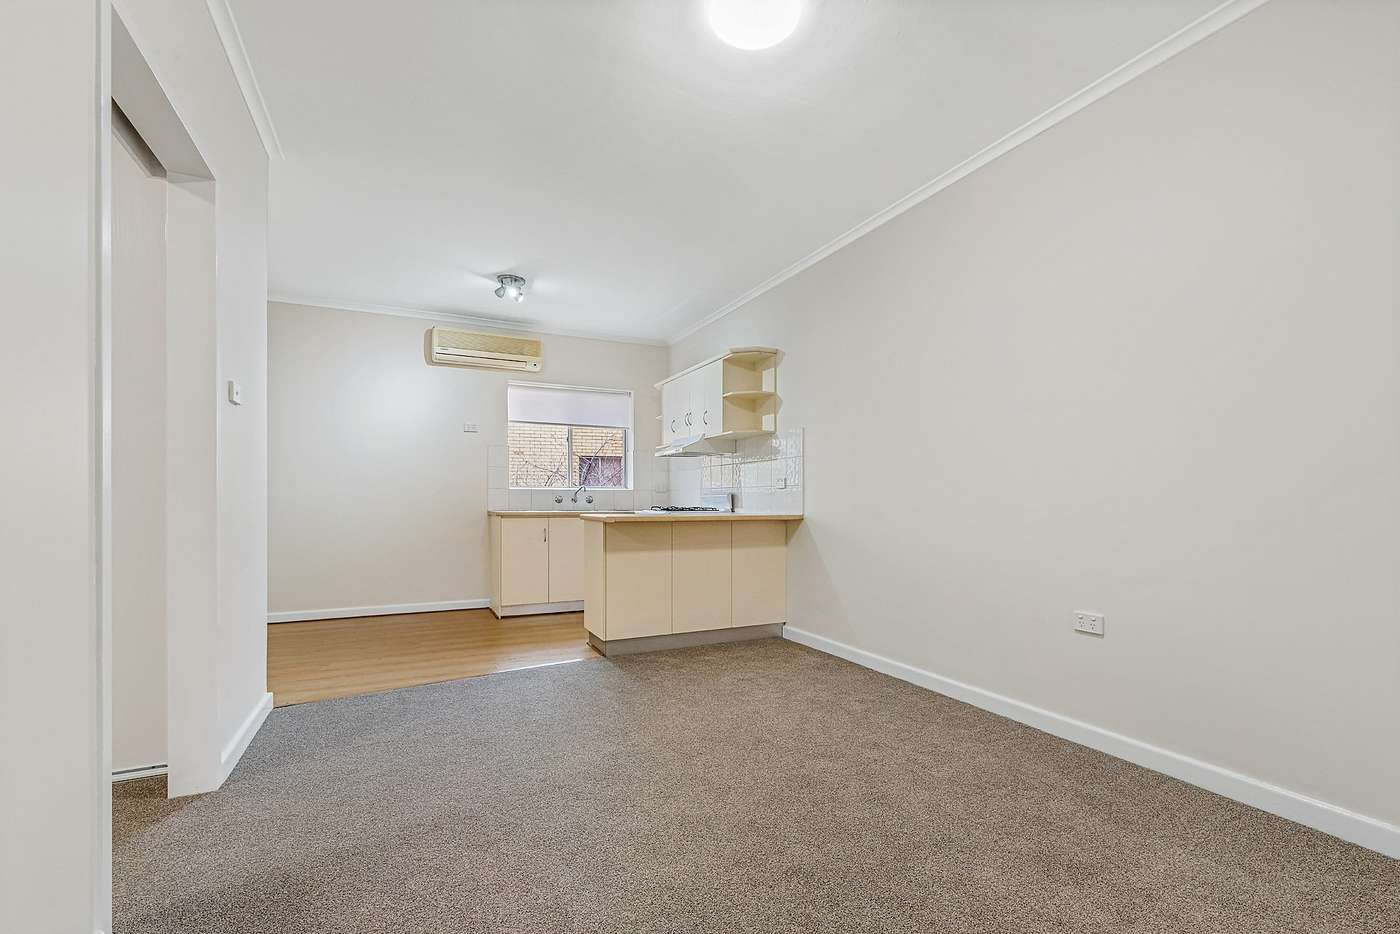 Seventh view of Homely unit listing, Unit 8/1A Hartland Avenue, Black Forest SA 5035